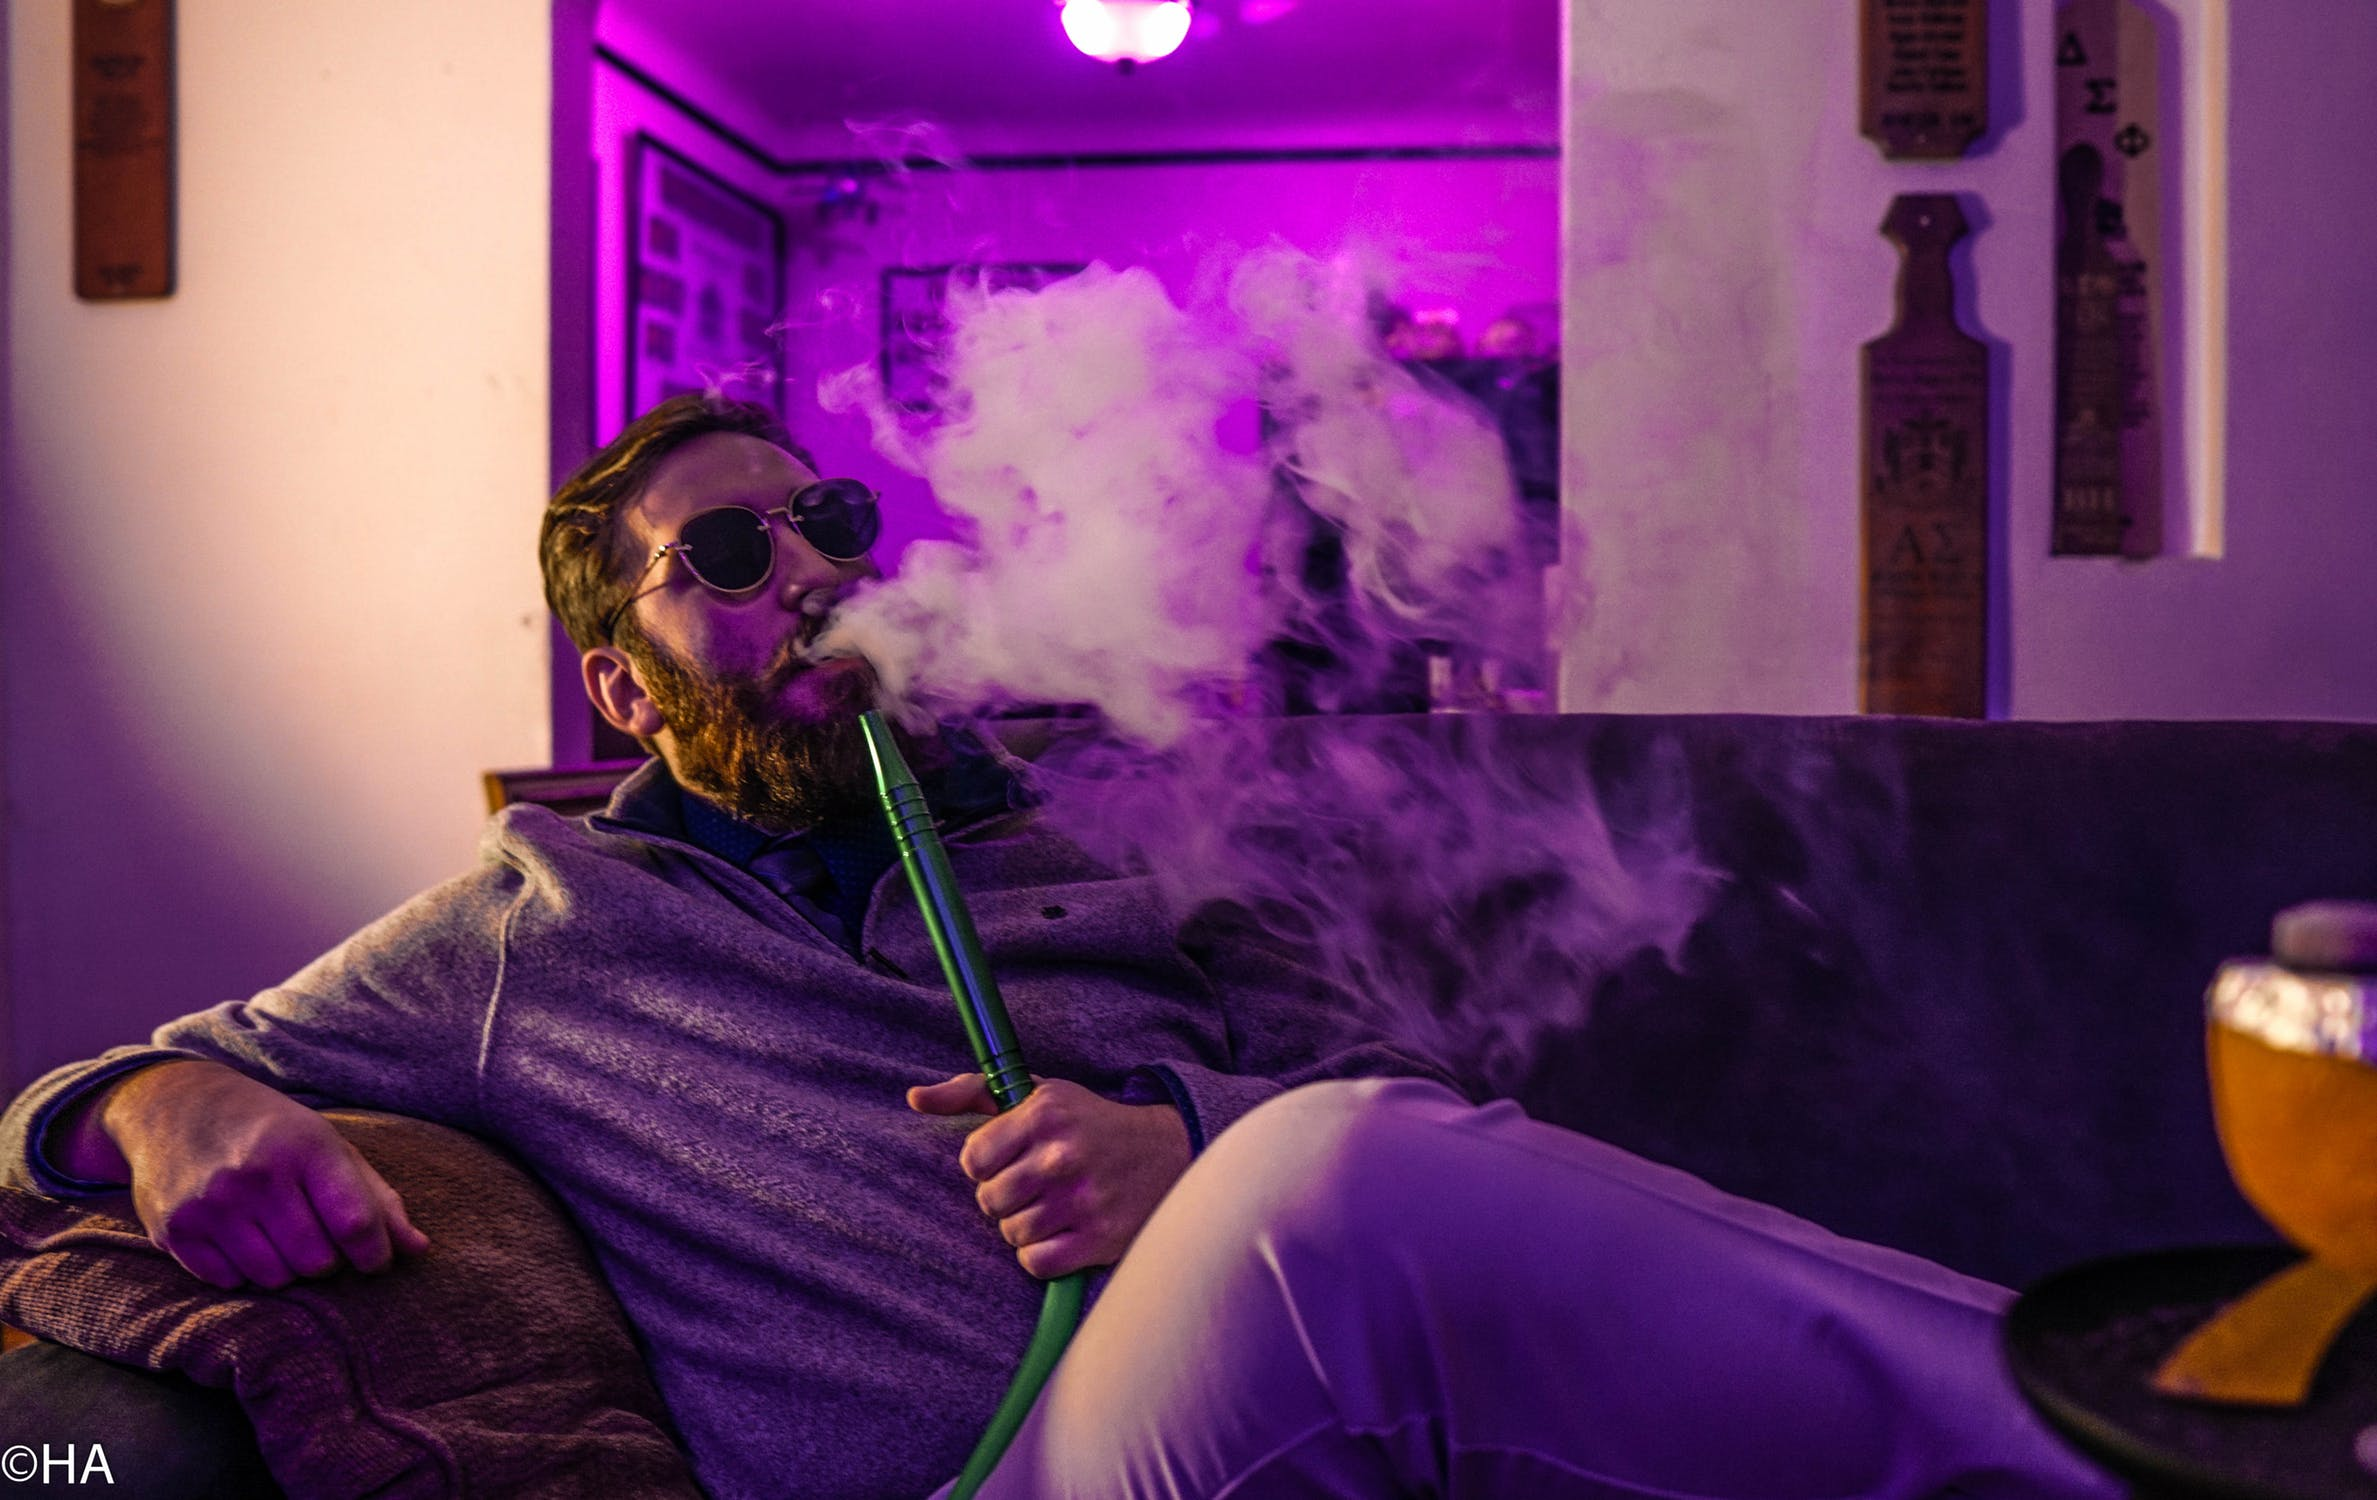 Hookah more dangerous than other forms of smoking tobacco